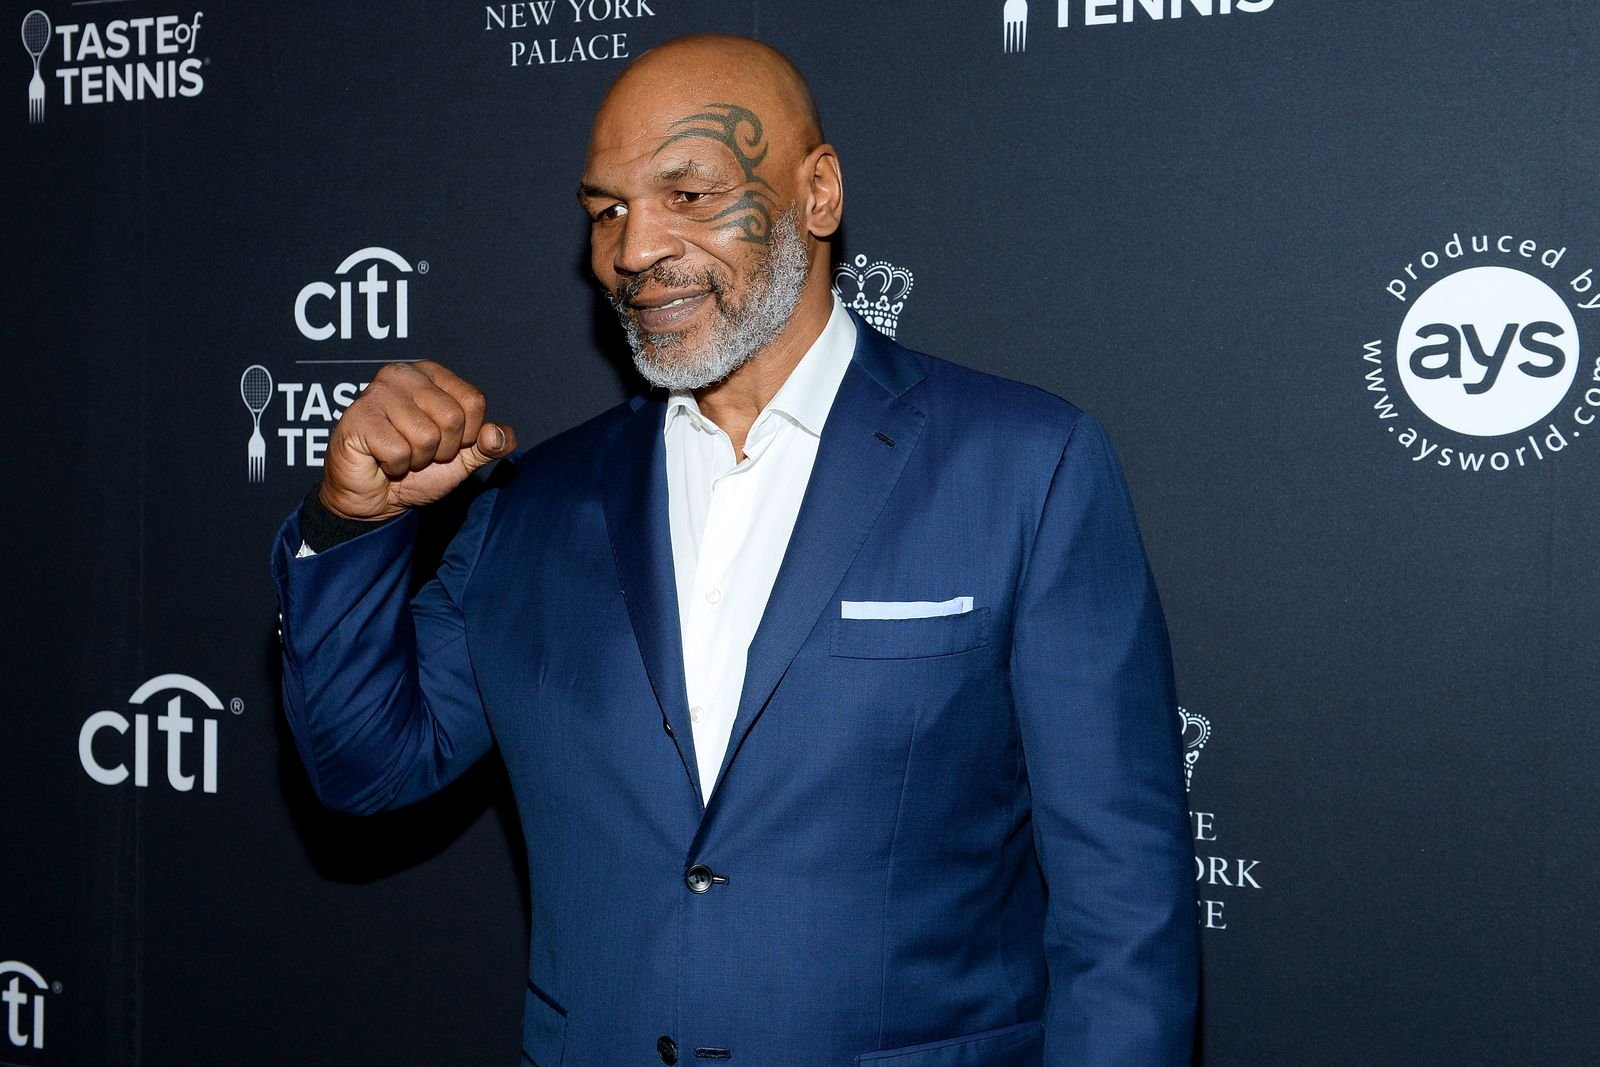 Mike Tyson attends the Citi Taste Of Tennis on August 22, 2019 | Photo: Getty Images